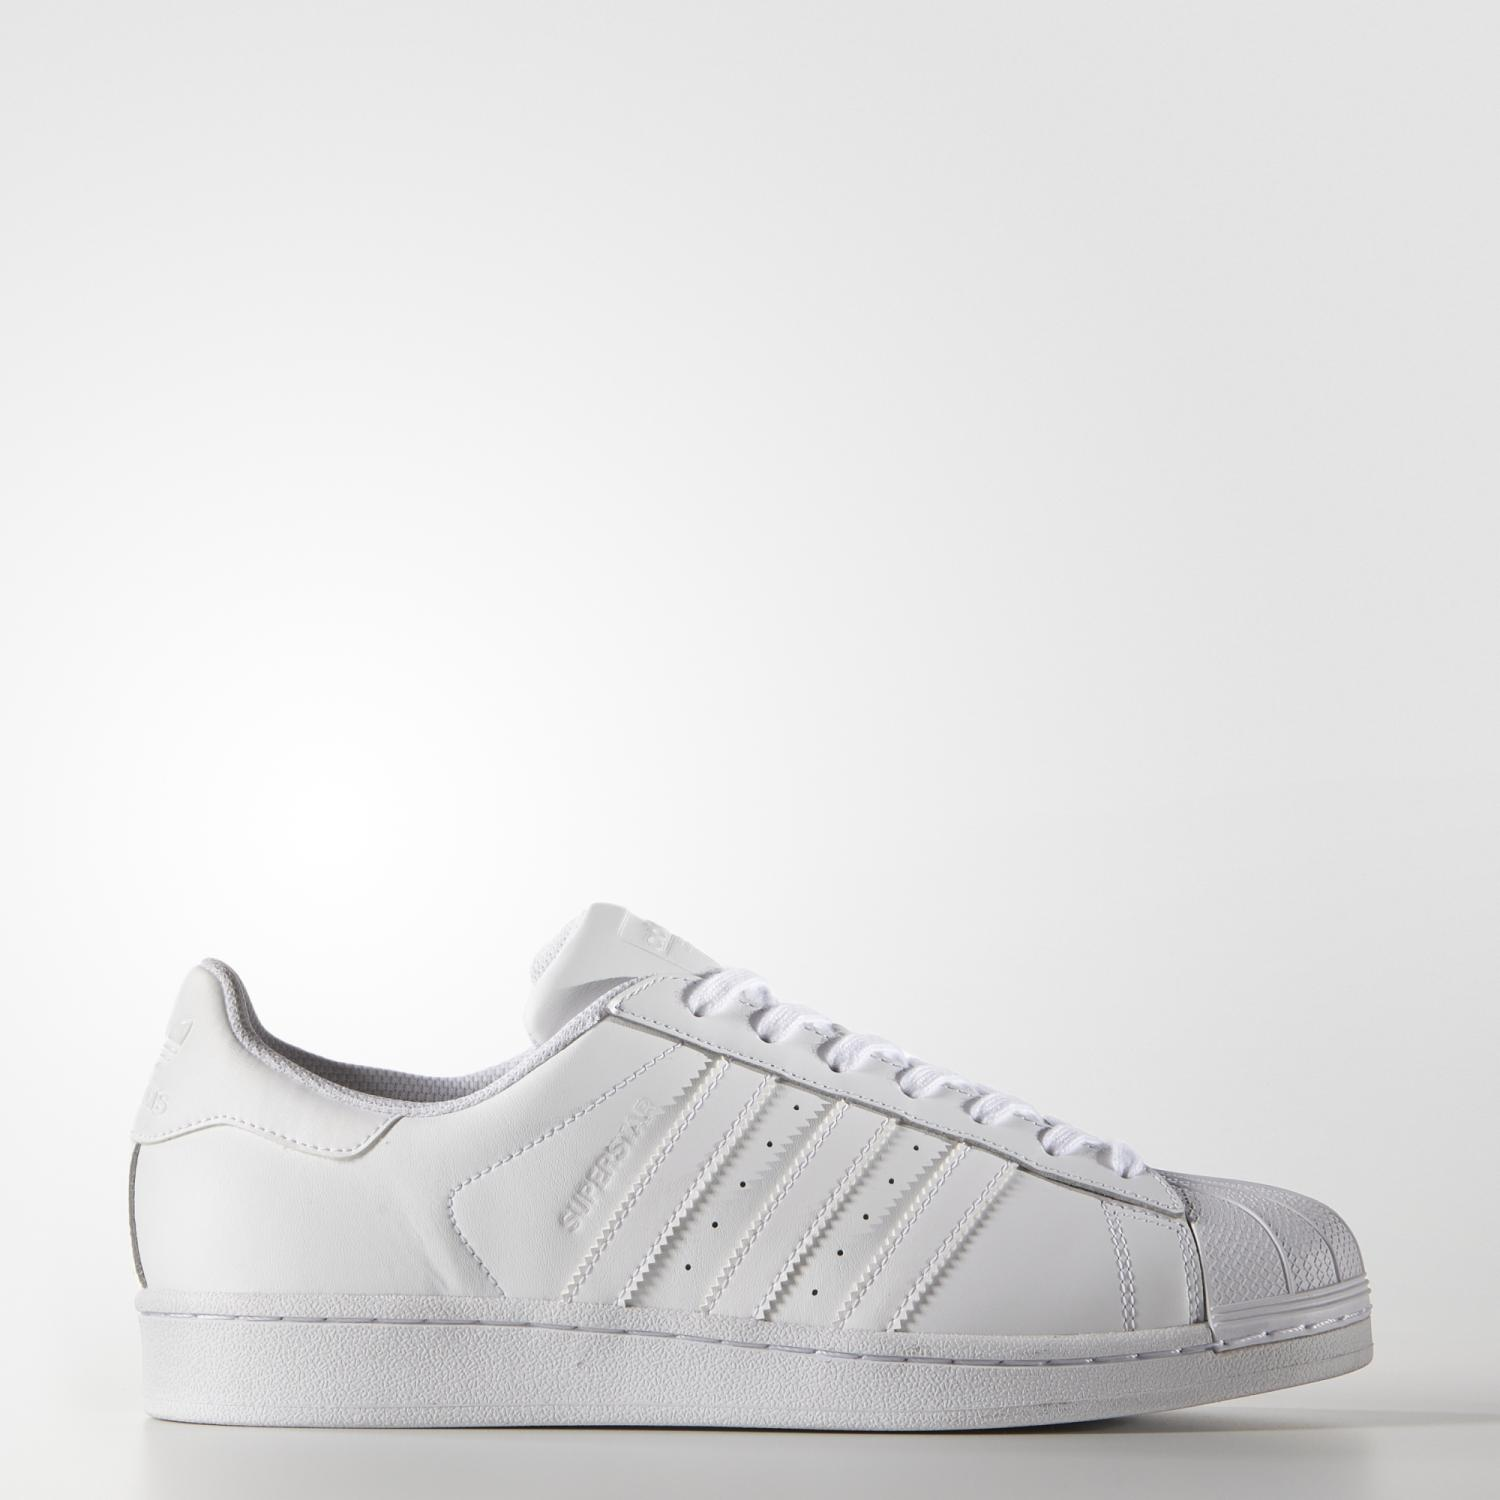 Adidas Originals Shoes Superstar